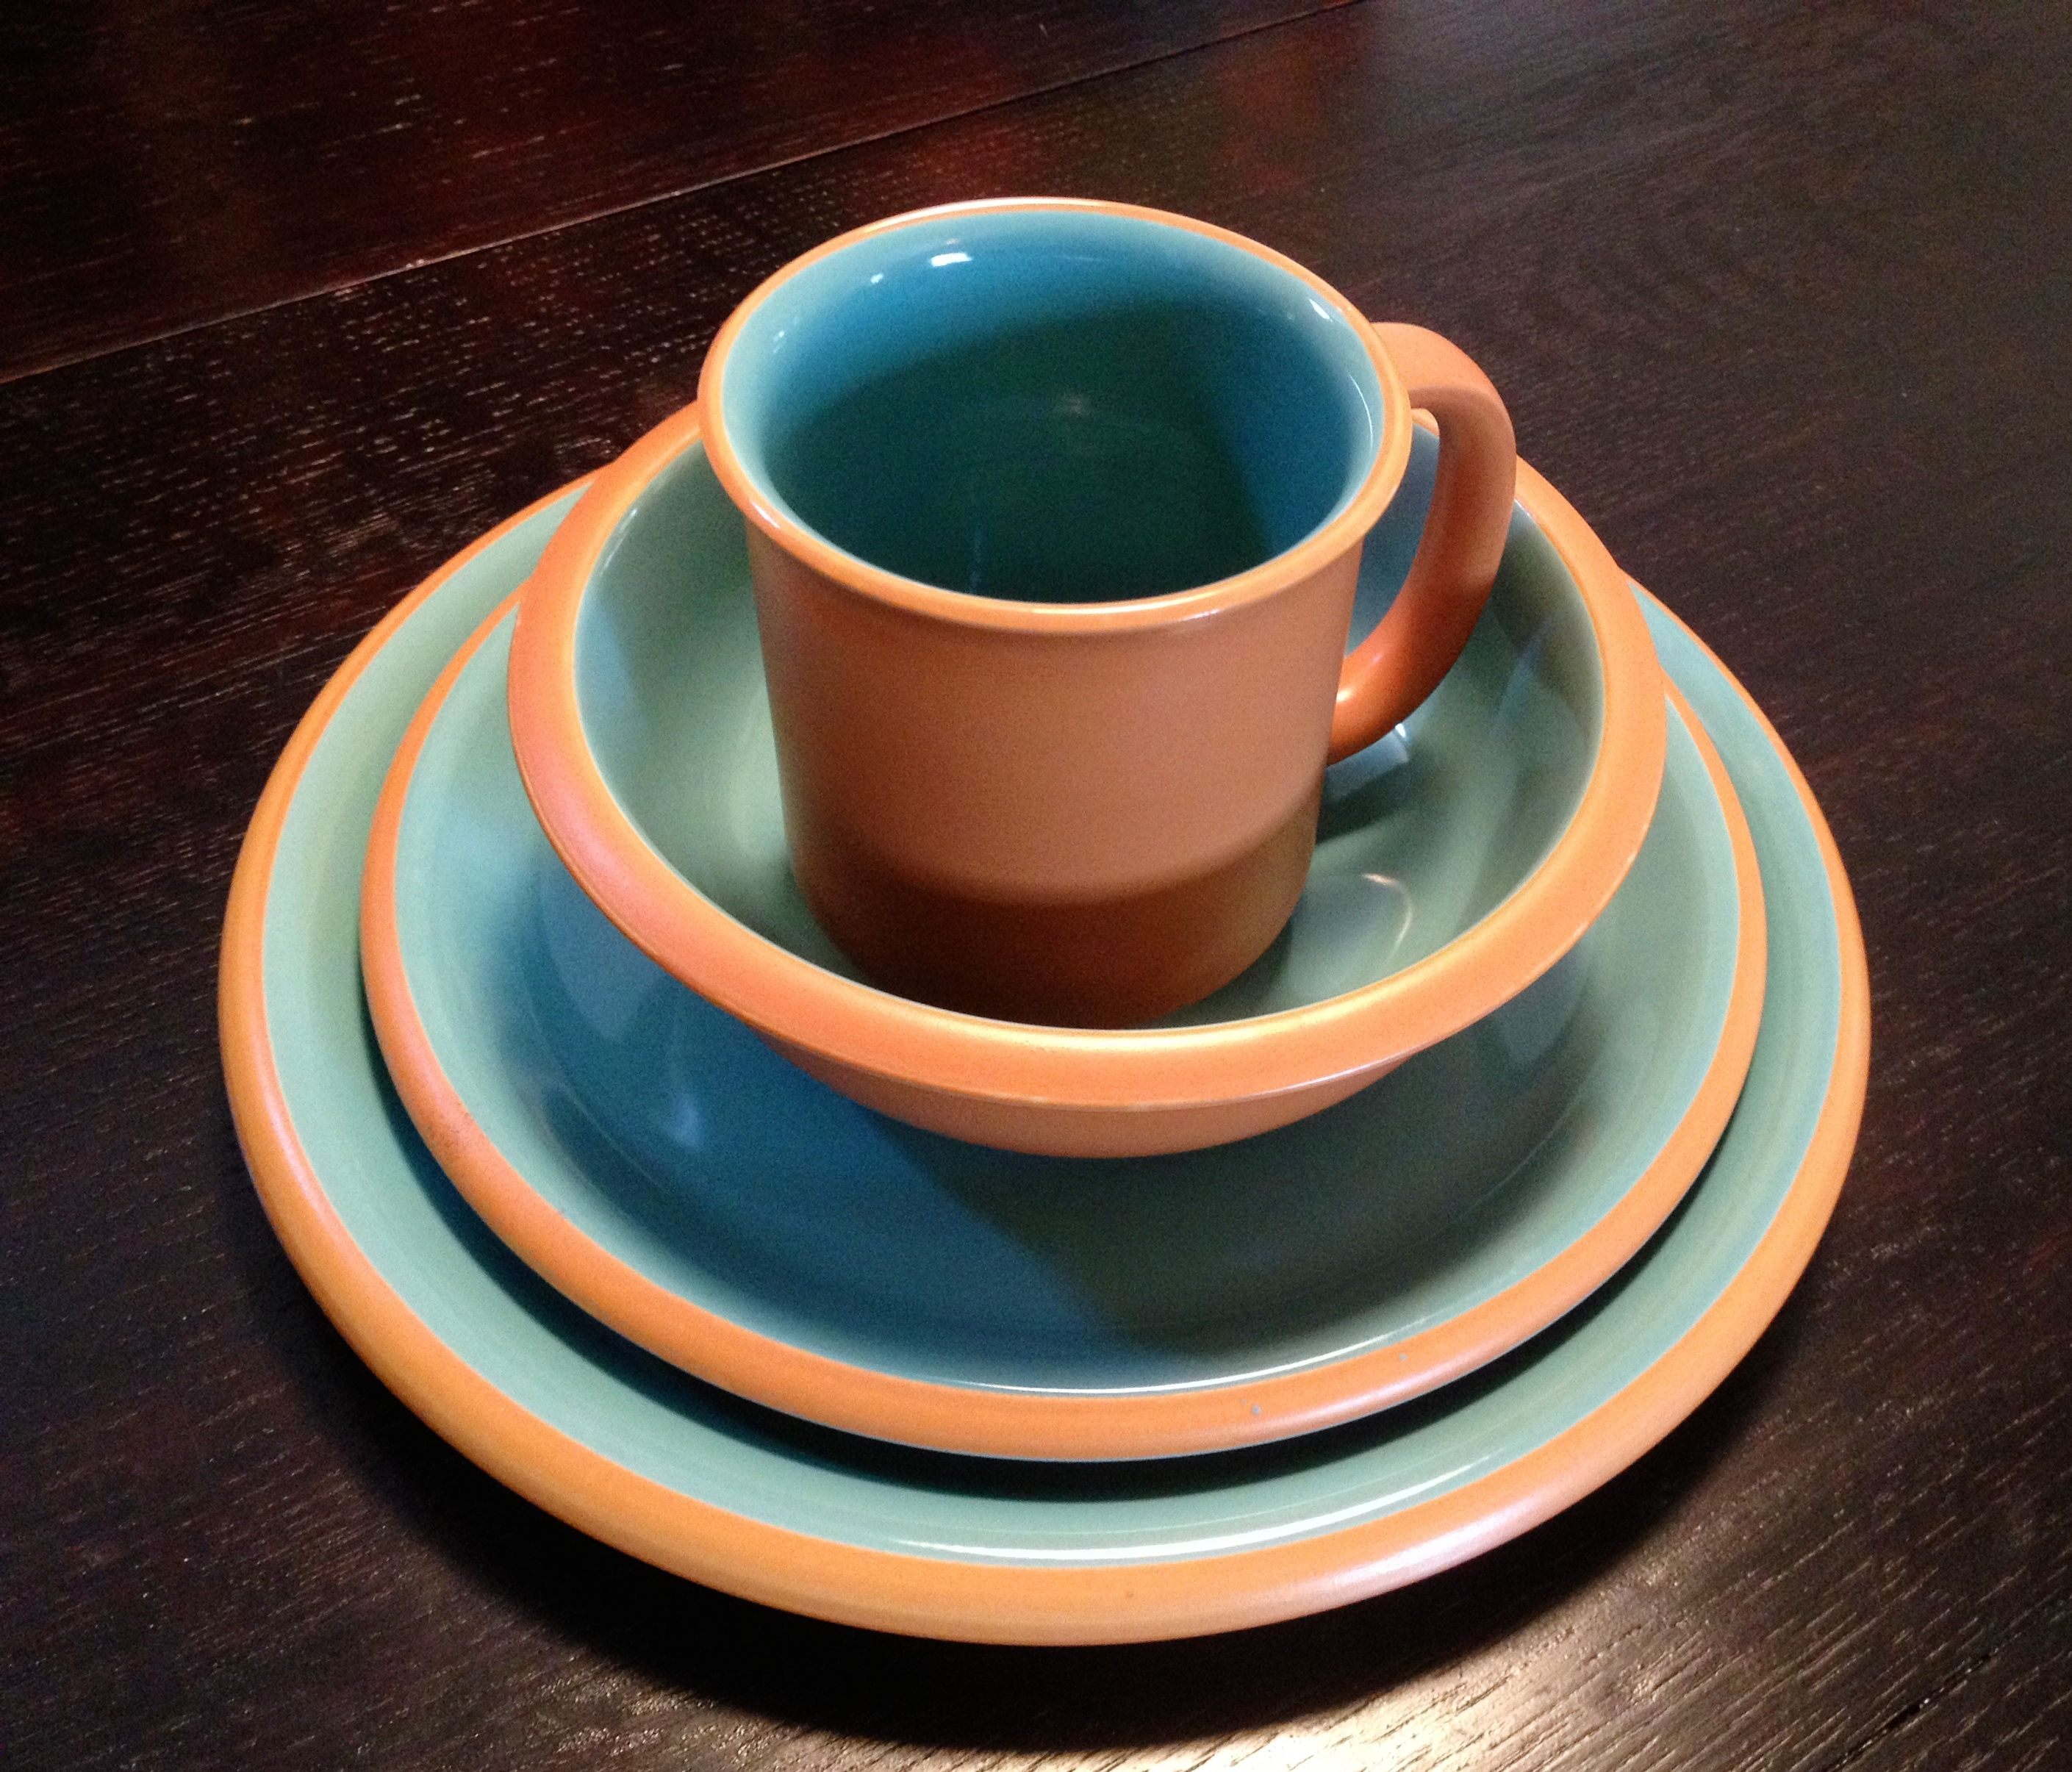 1950\u0027s Japan Crown Corning Corsona Dinnerware. Picked up a Set of 12 on eBay. Initially wasn\u0027t sure of the terra cotta trim but now really enjoy using these ... & 1950\u0027s Japan Crown Corning Corsona Dinnerware. Picked up a Set of 12 ...